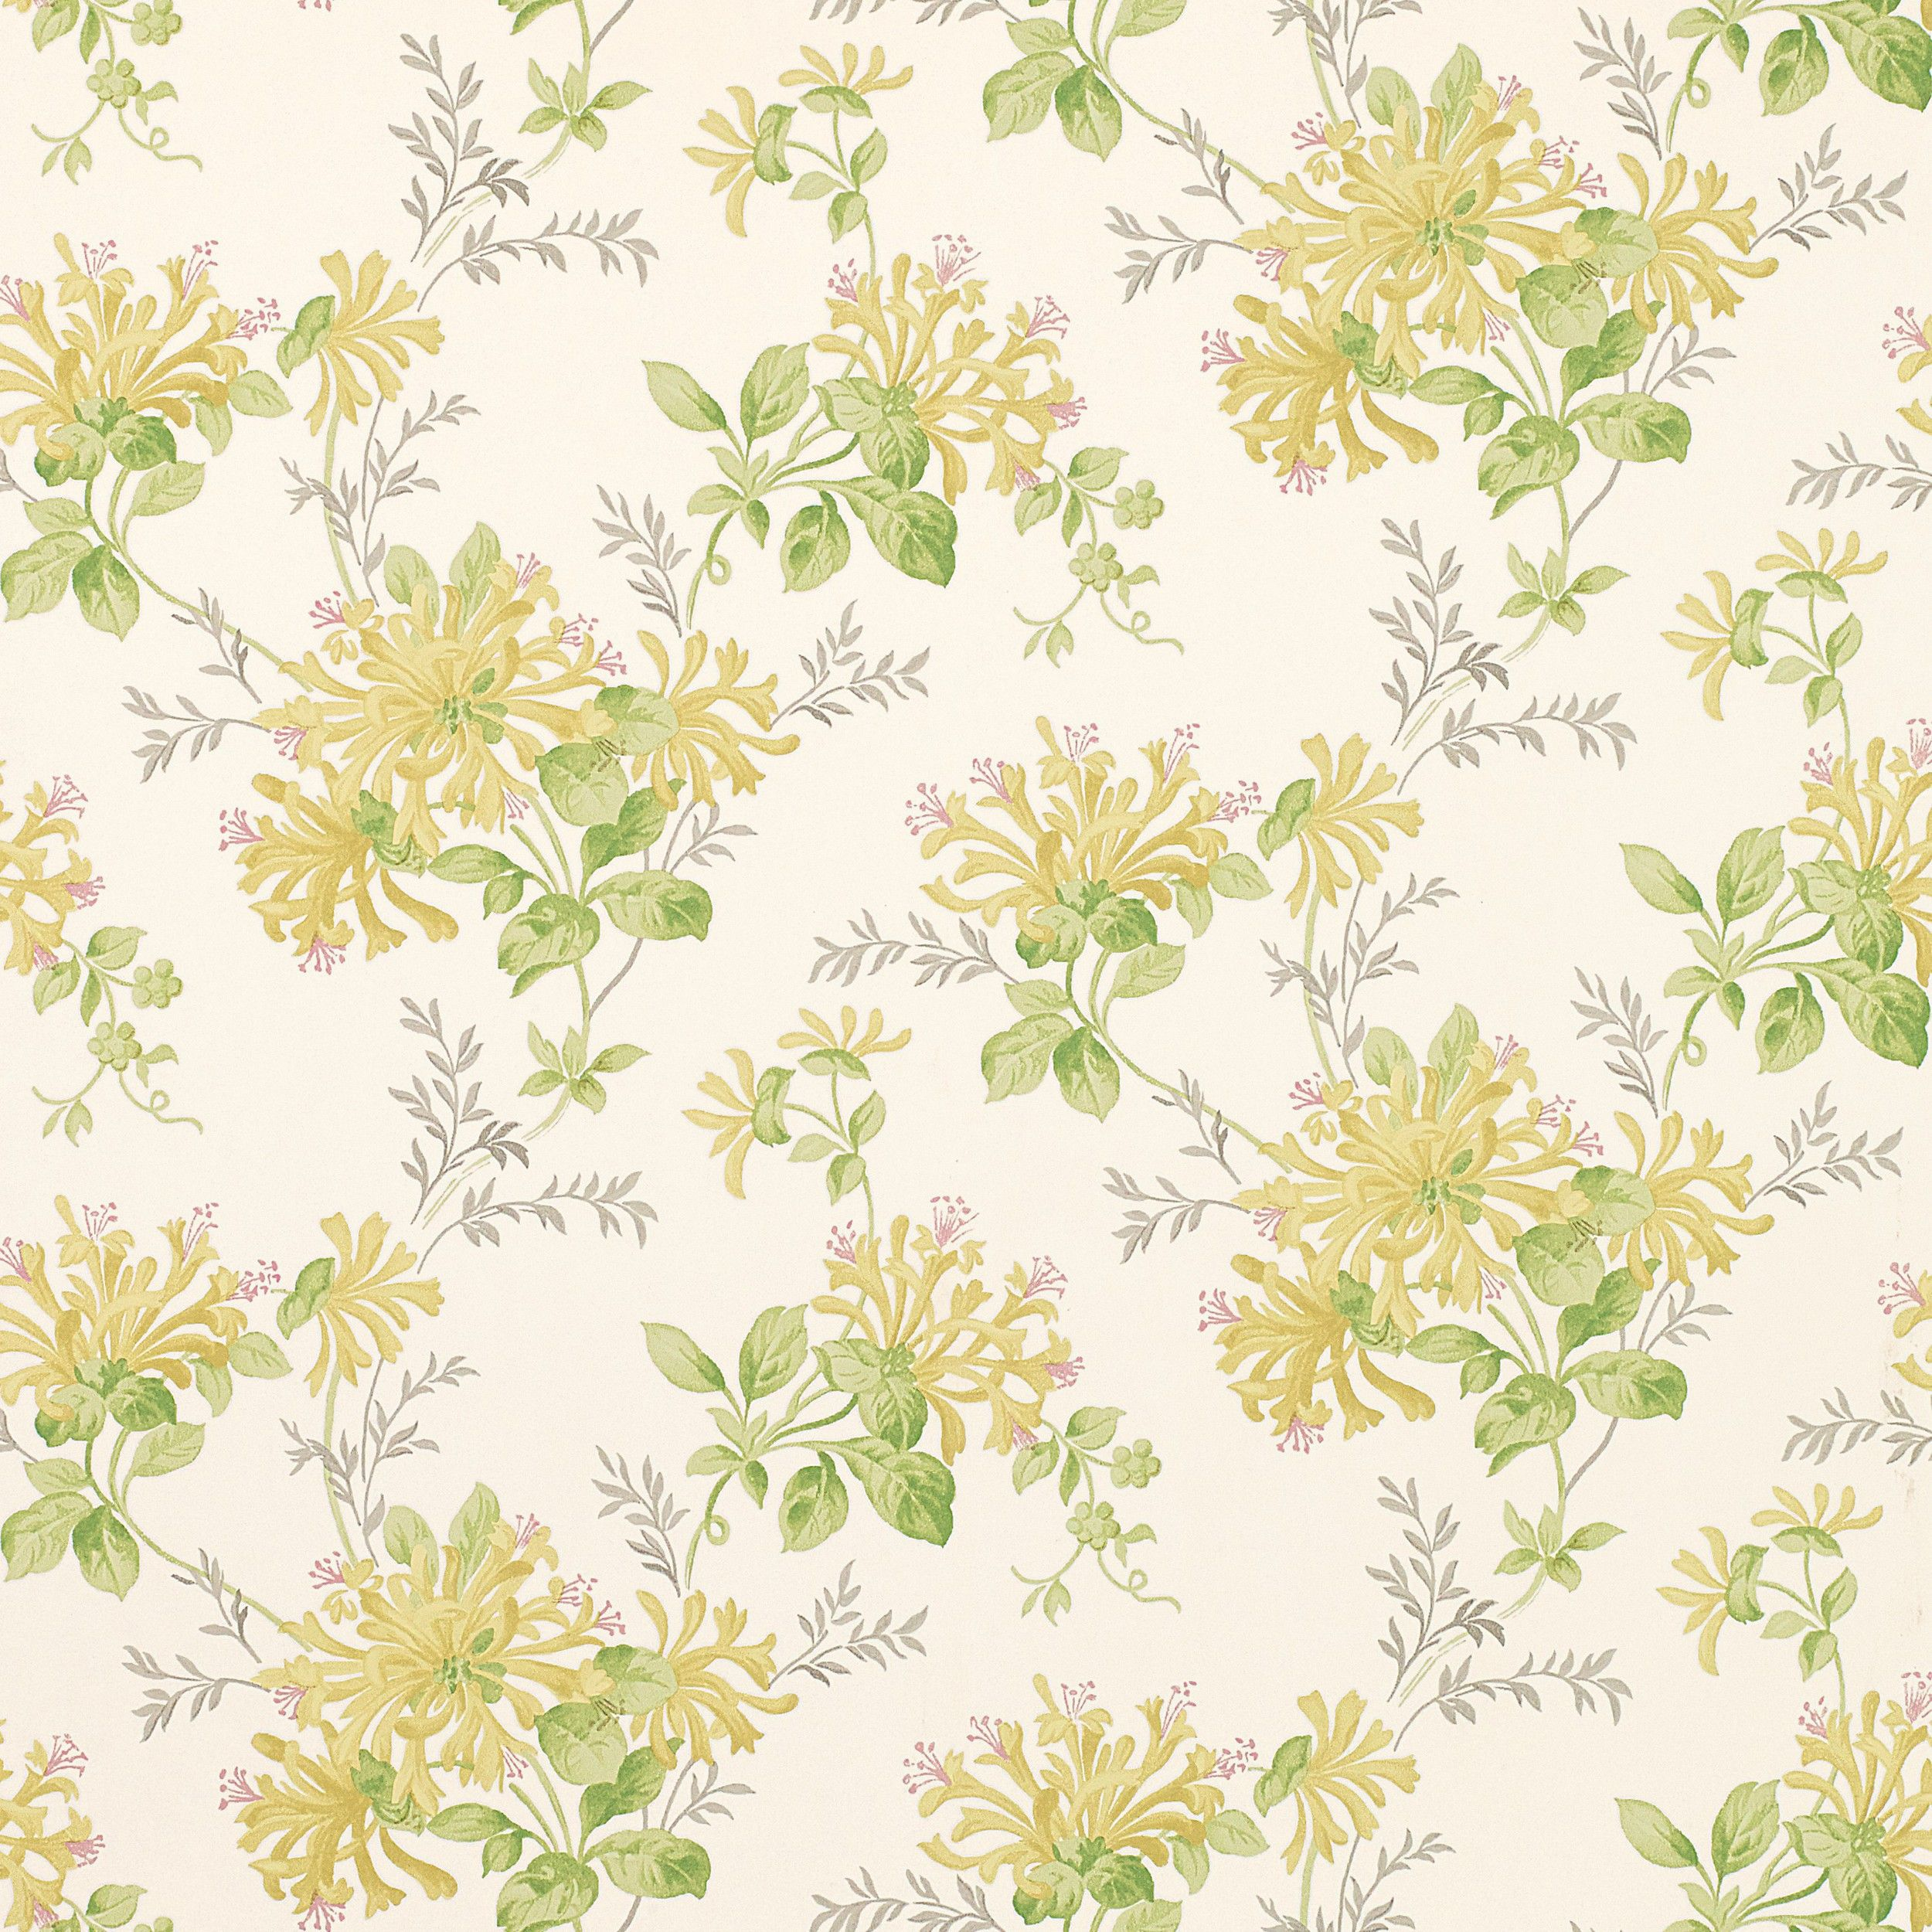 Honeysuckle Trail Camomile Yellow Floral Wallpaper At Laura Ashley